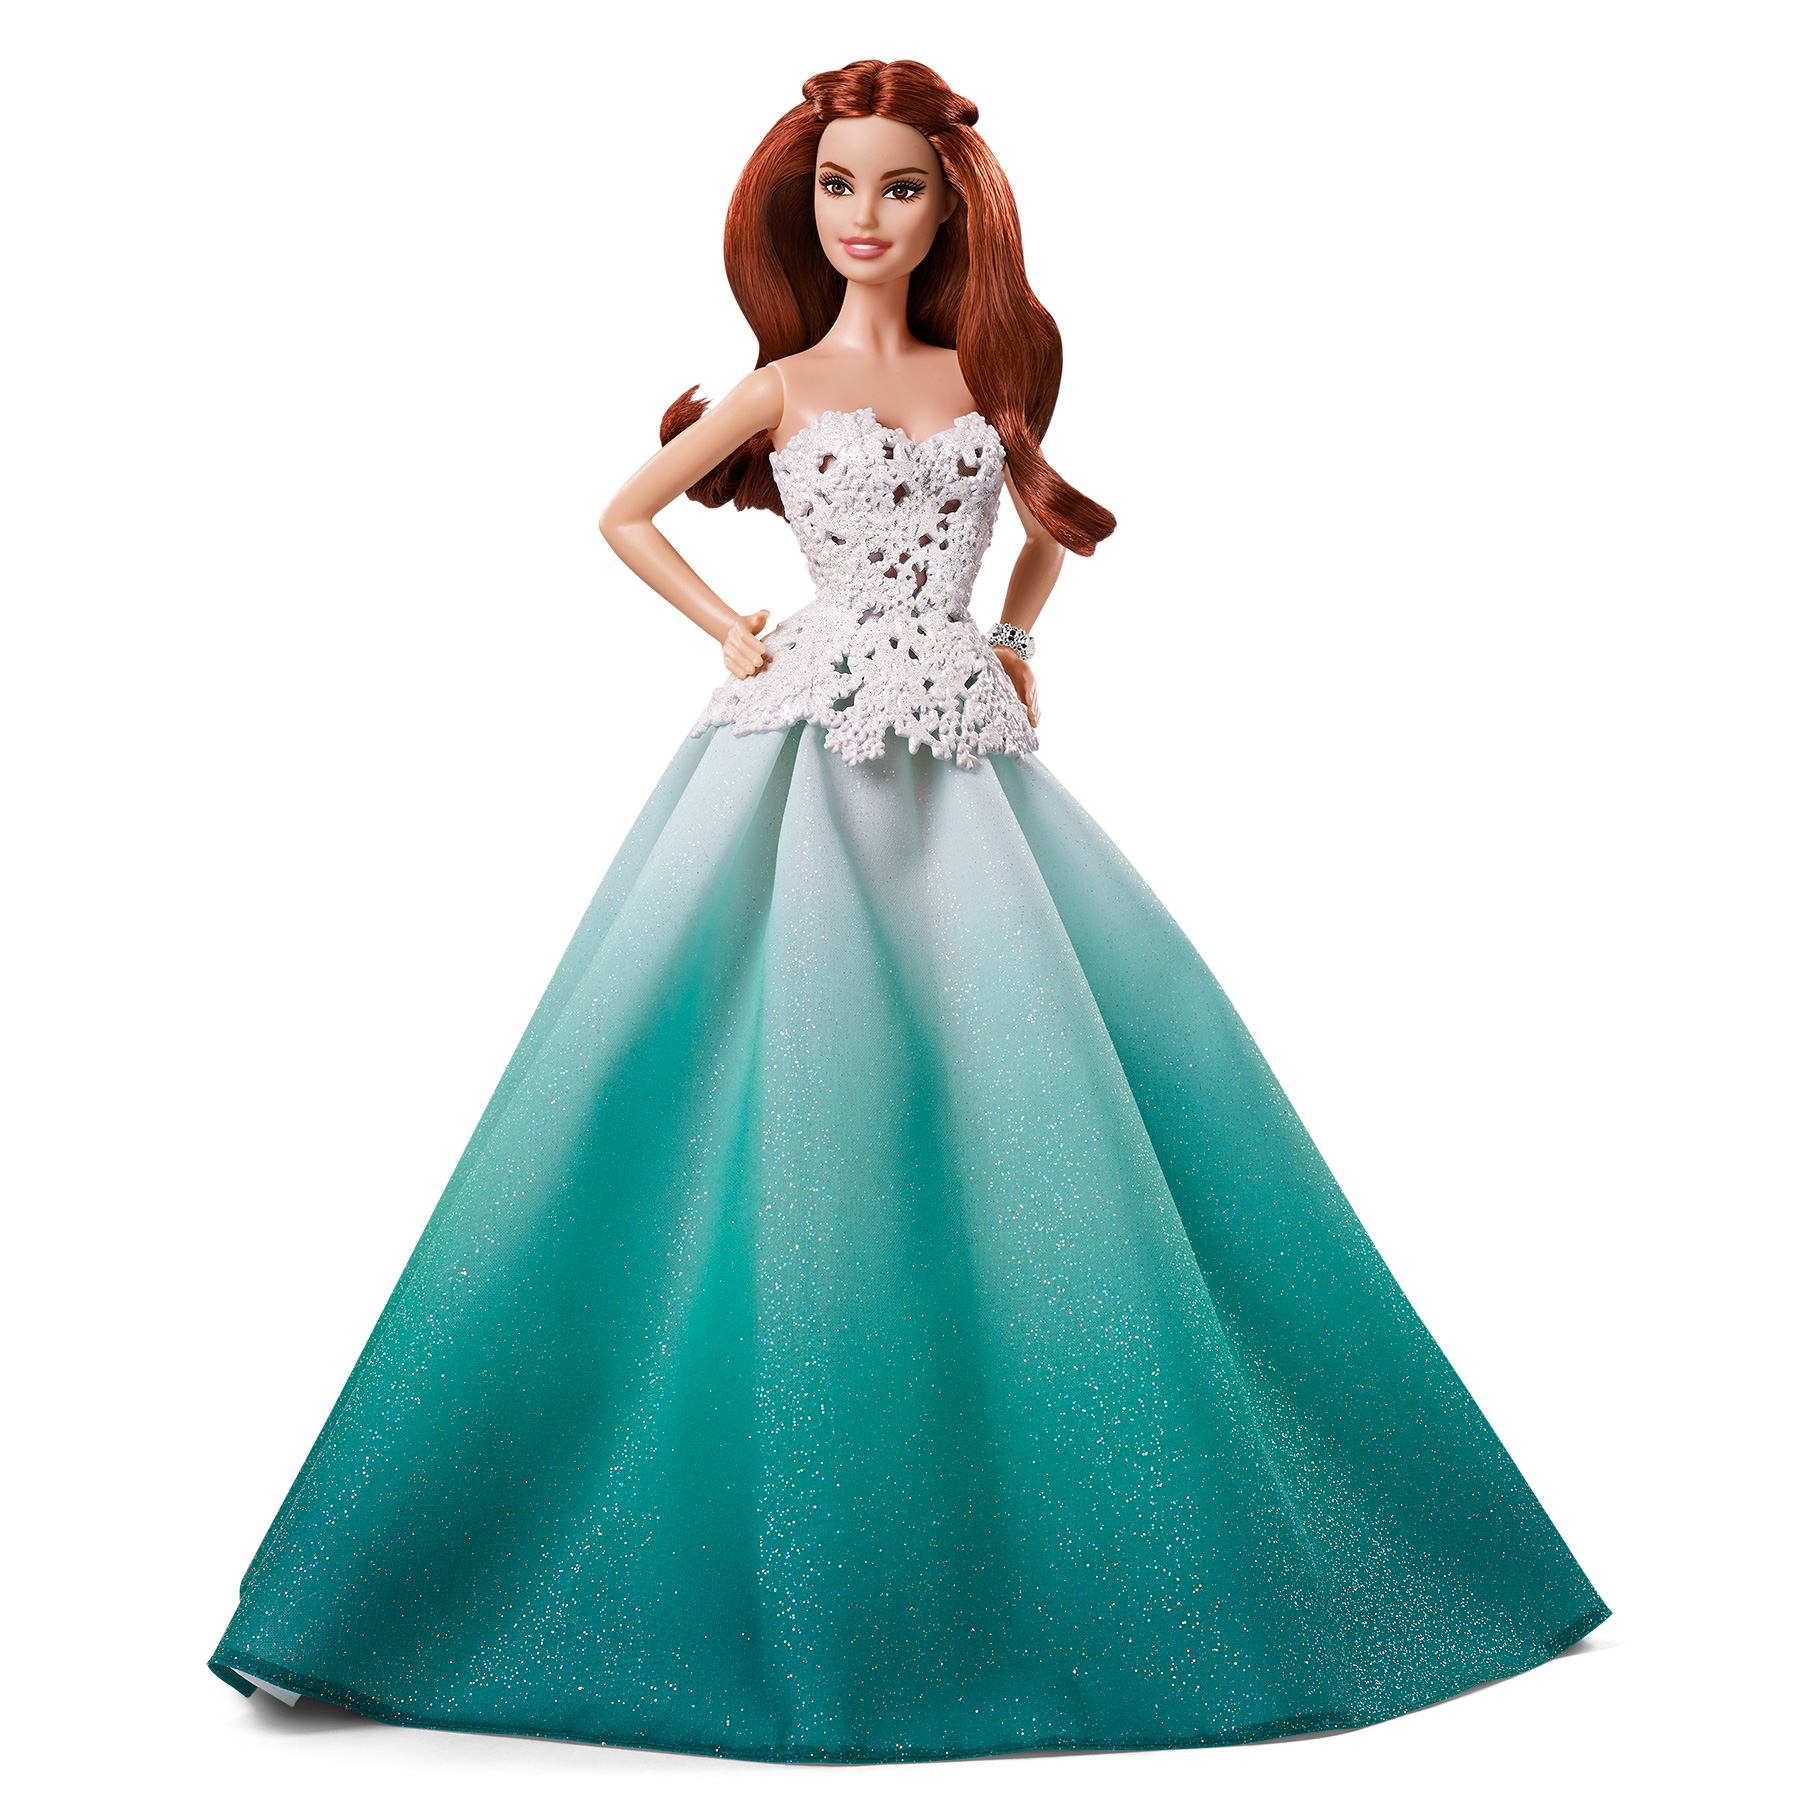 Barbie 2016 Holiday Doll With Red Hair Kmart Exclusive